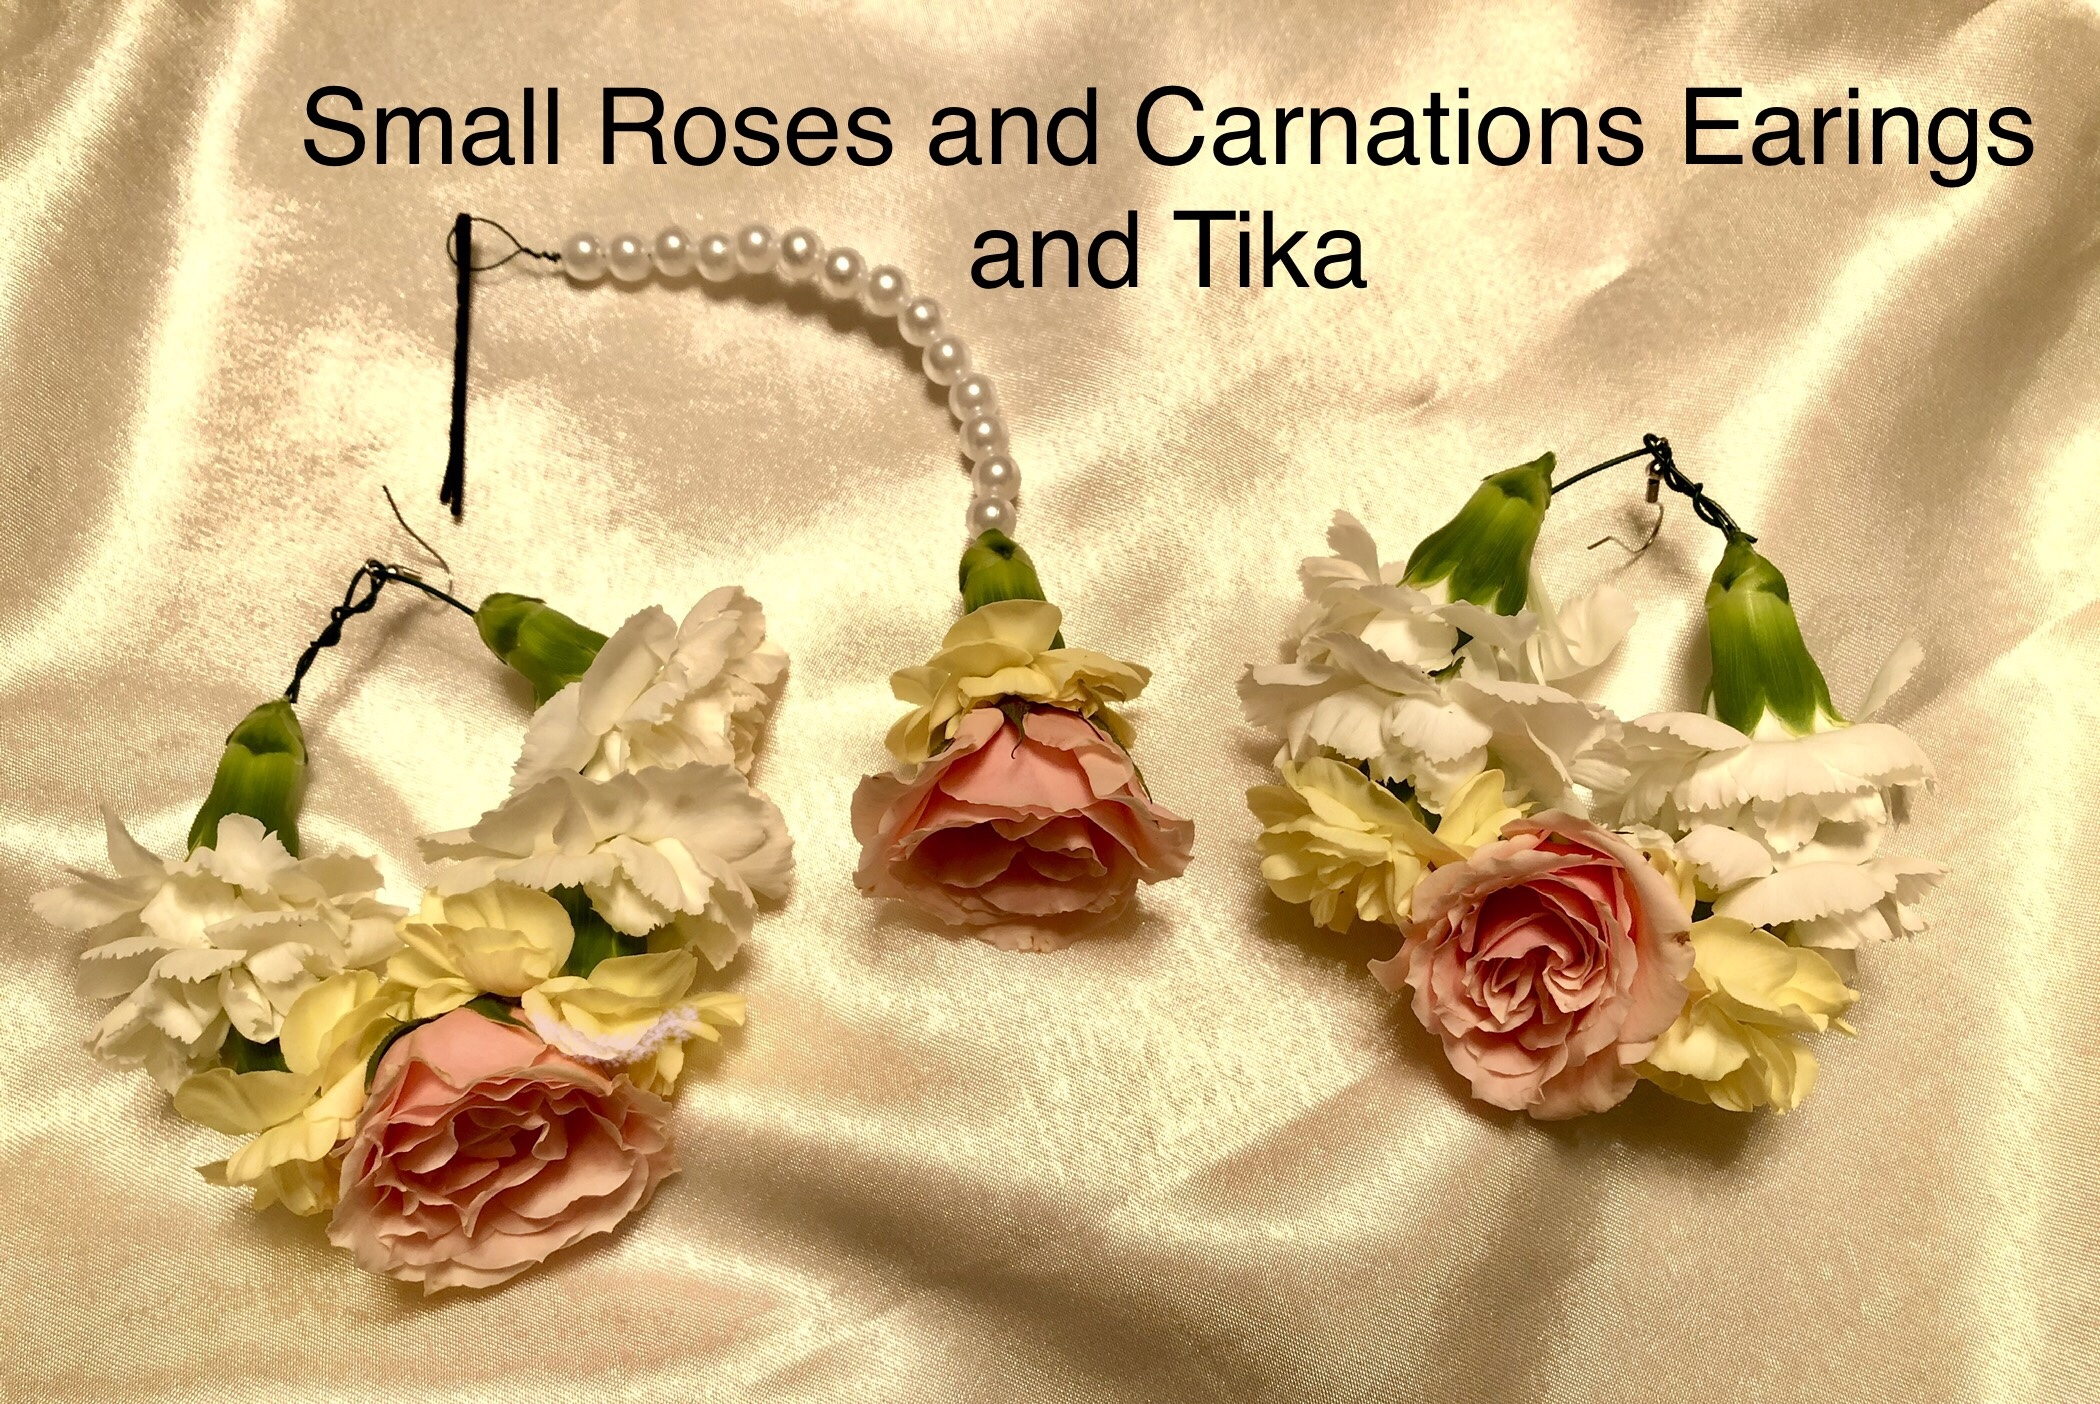 Small Roses and Carnations Earings and Tika